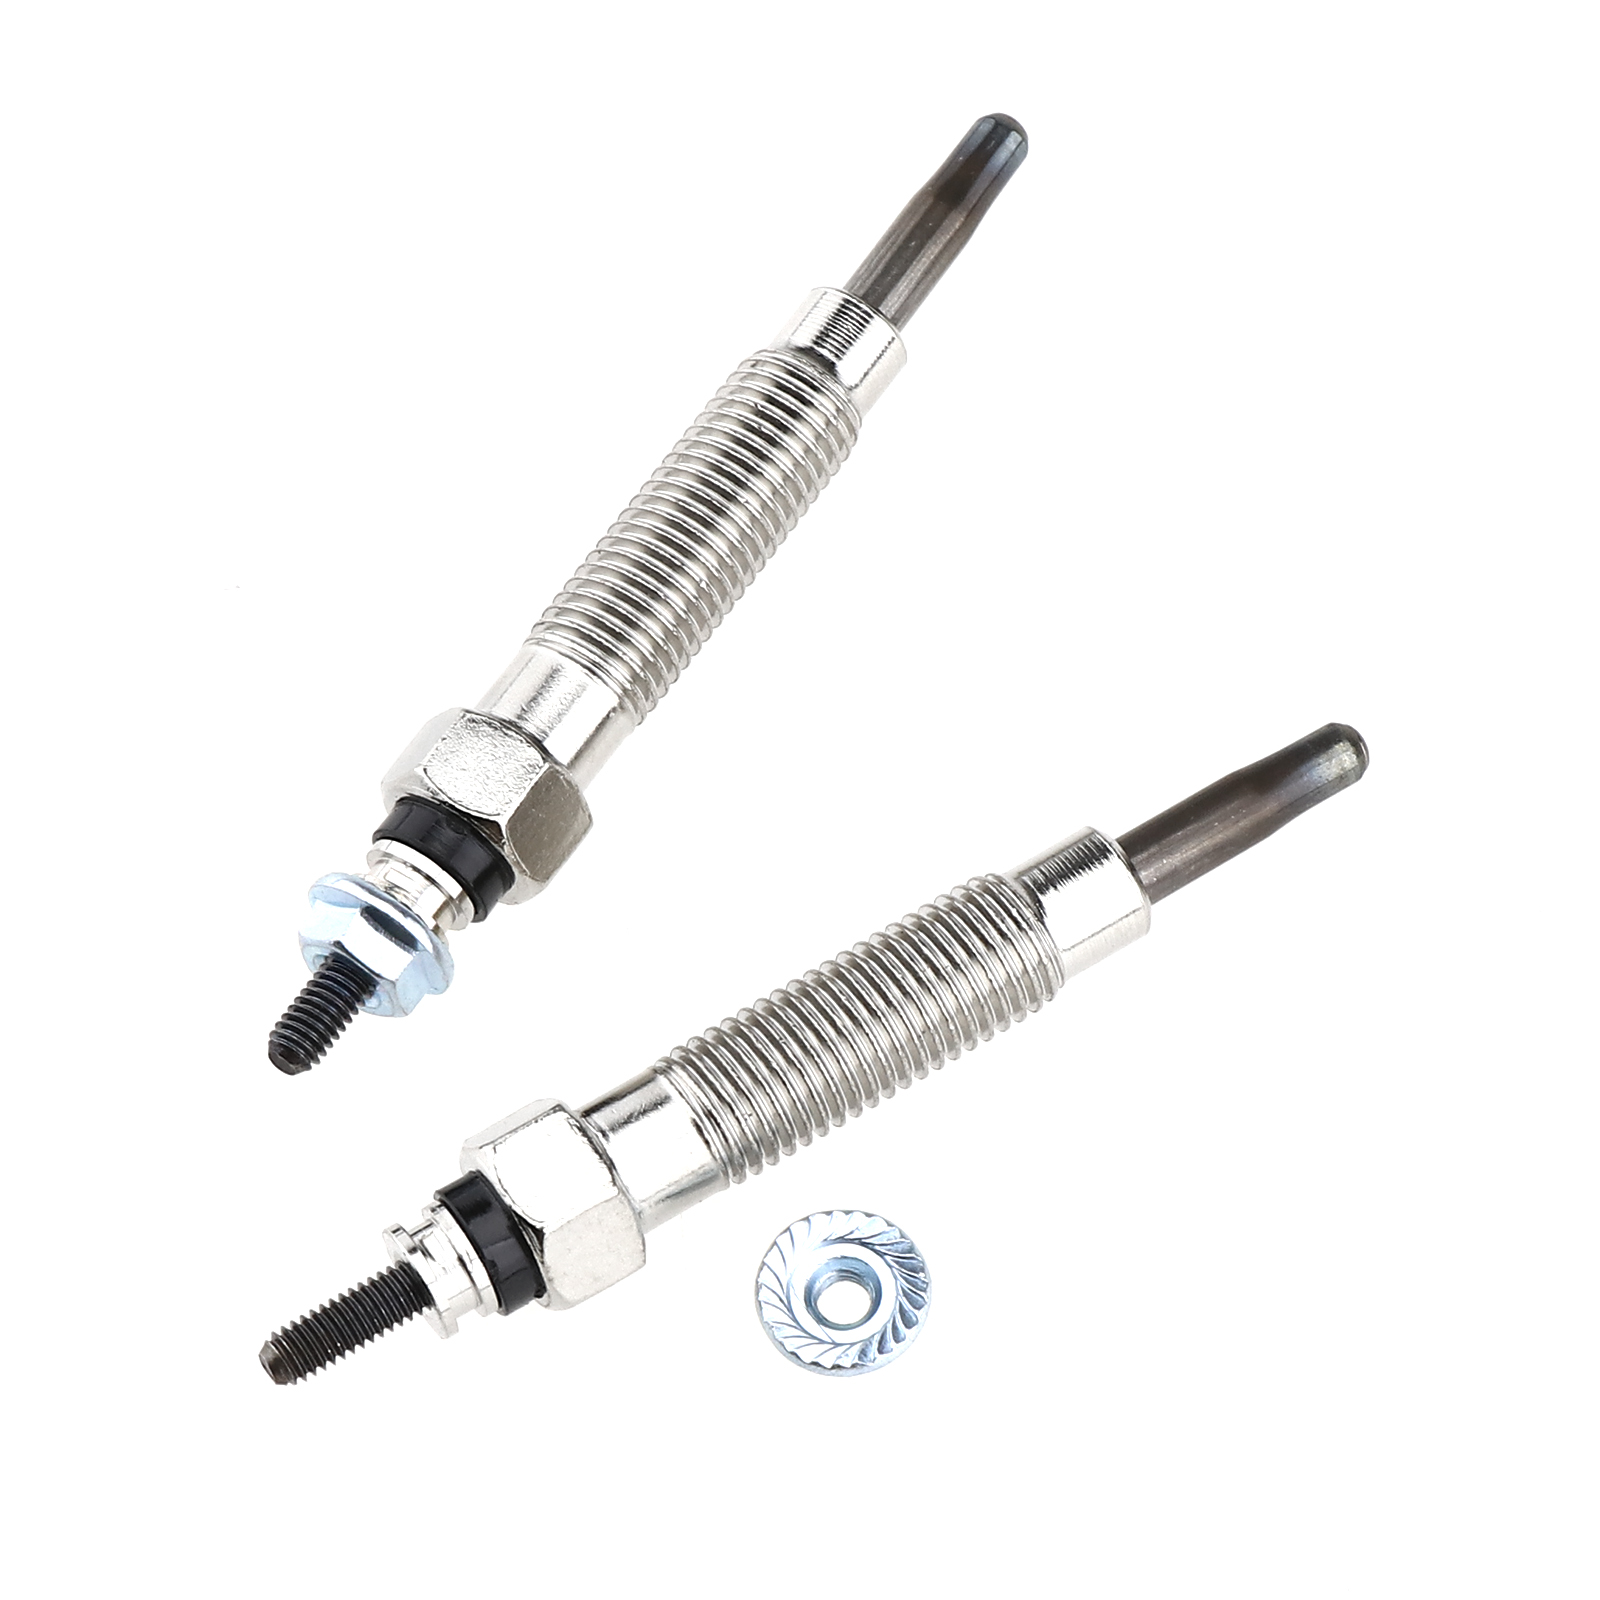 4xsel Heater Glow Plugs For Mitsubishi Challenger L200